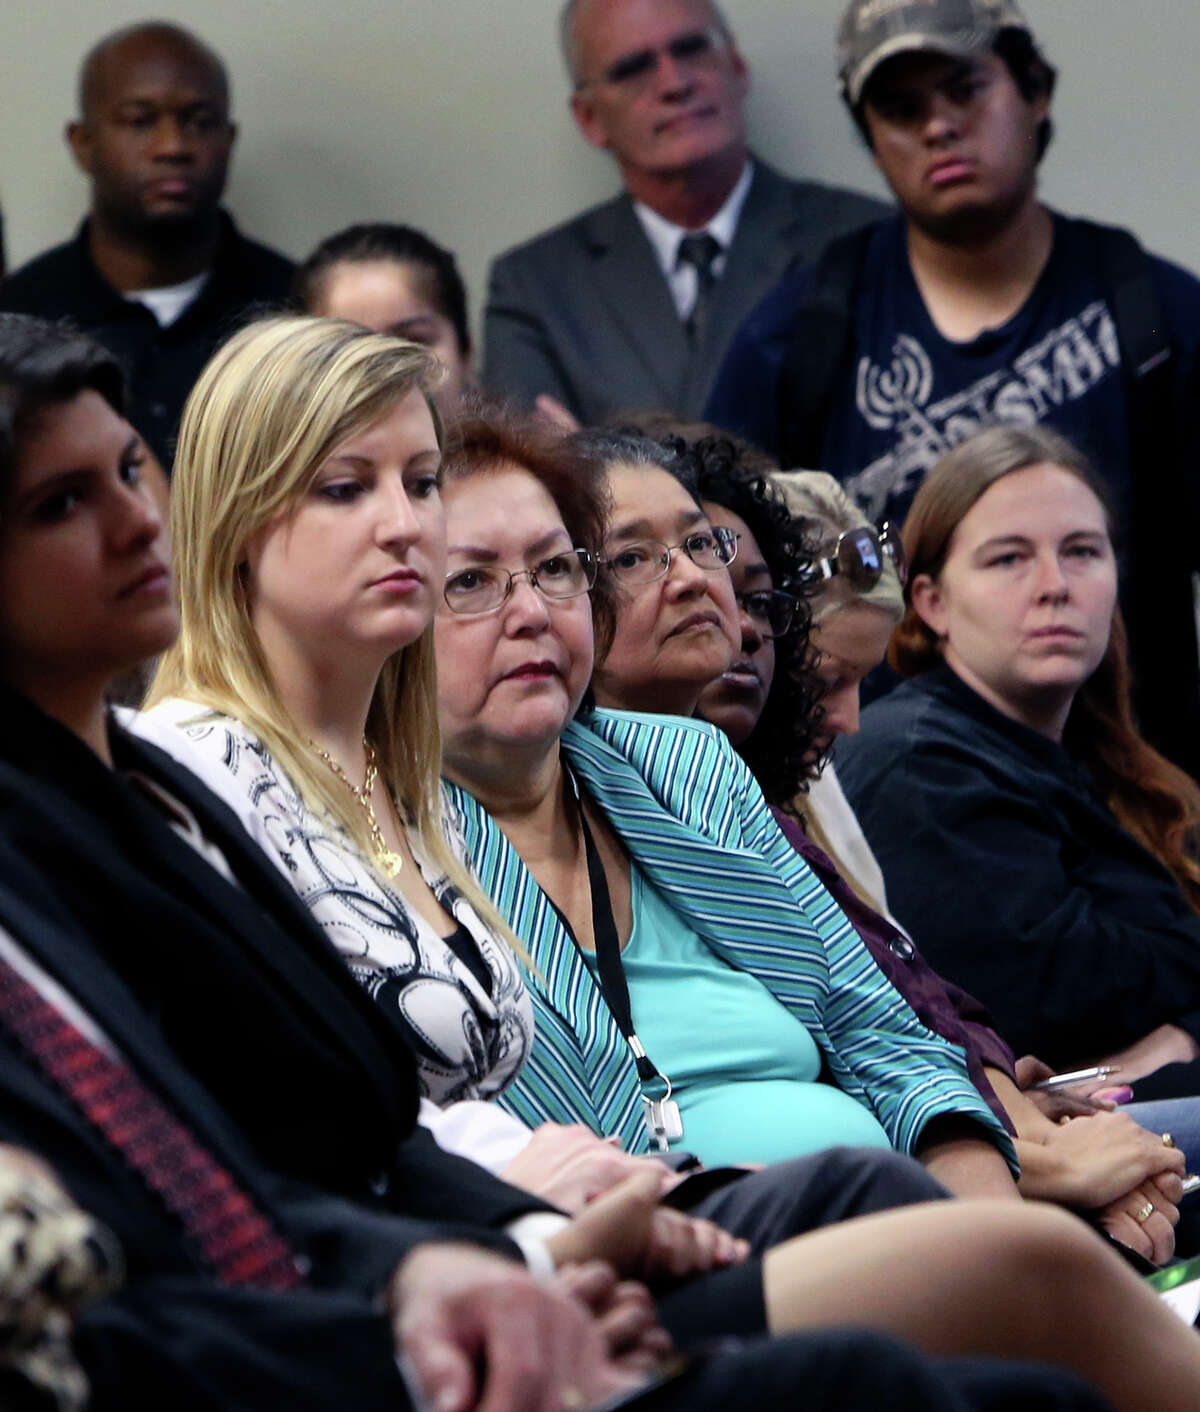 Students and other attendees listen to speakers at San Antonio College during a forum on open enrollment in the exchange for health insurance on Monday Sept. 23, 2013, . Congressman Lloyd Doggett, U.S. Secretary of Labor Thomas Perez and Mayor Julian Castro were three of the several speakers.